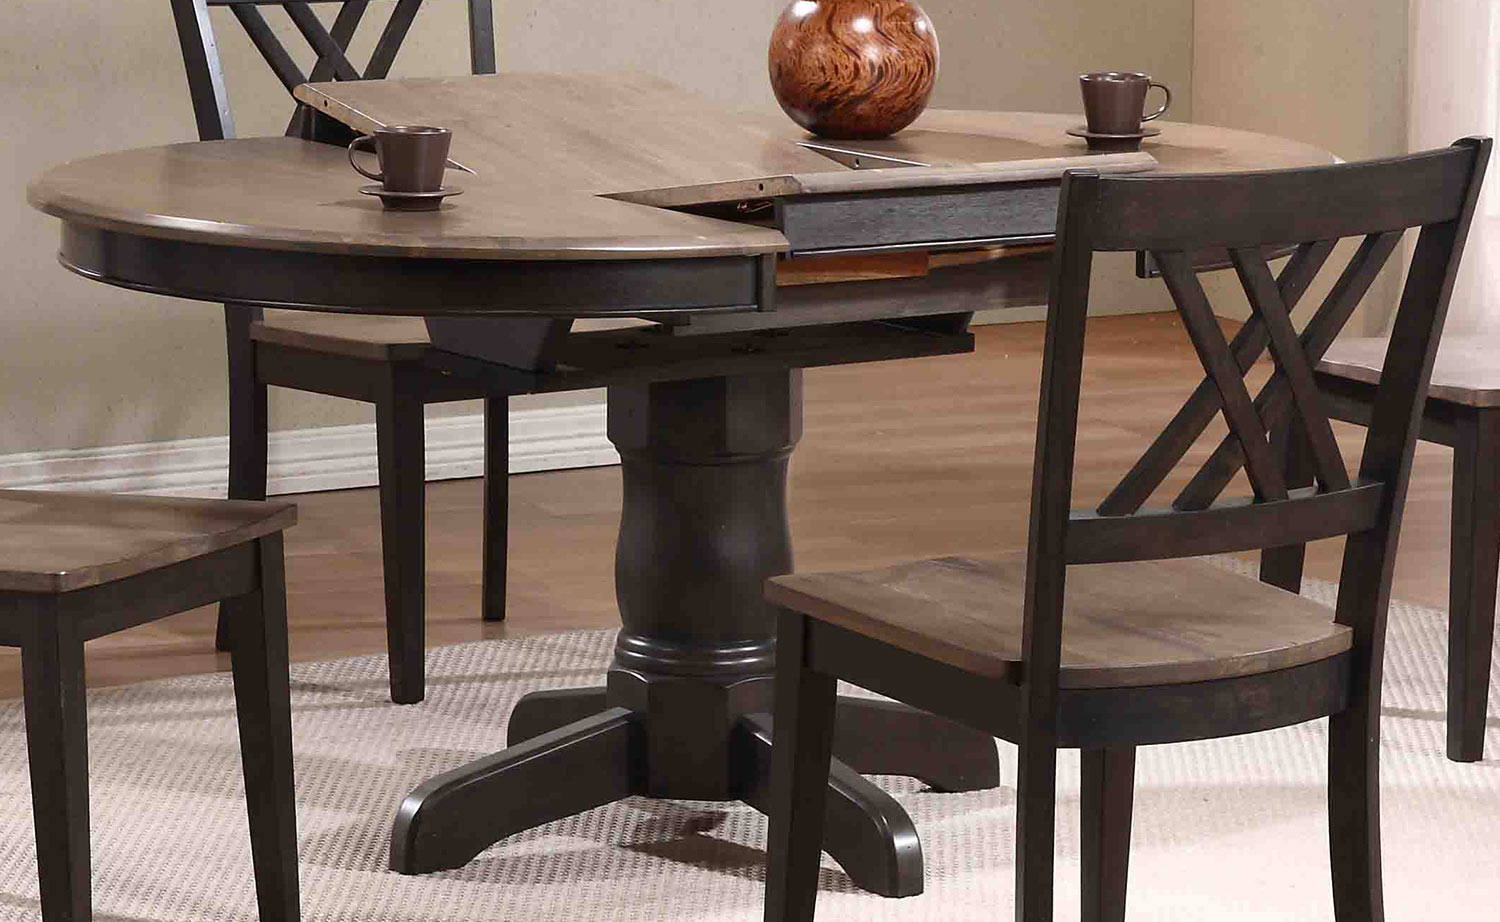 Iconic Furniture RoundOval Pedestal Dining Table Grey StoneBlack - Black oval pedestal dining table